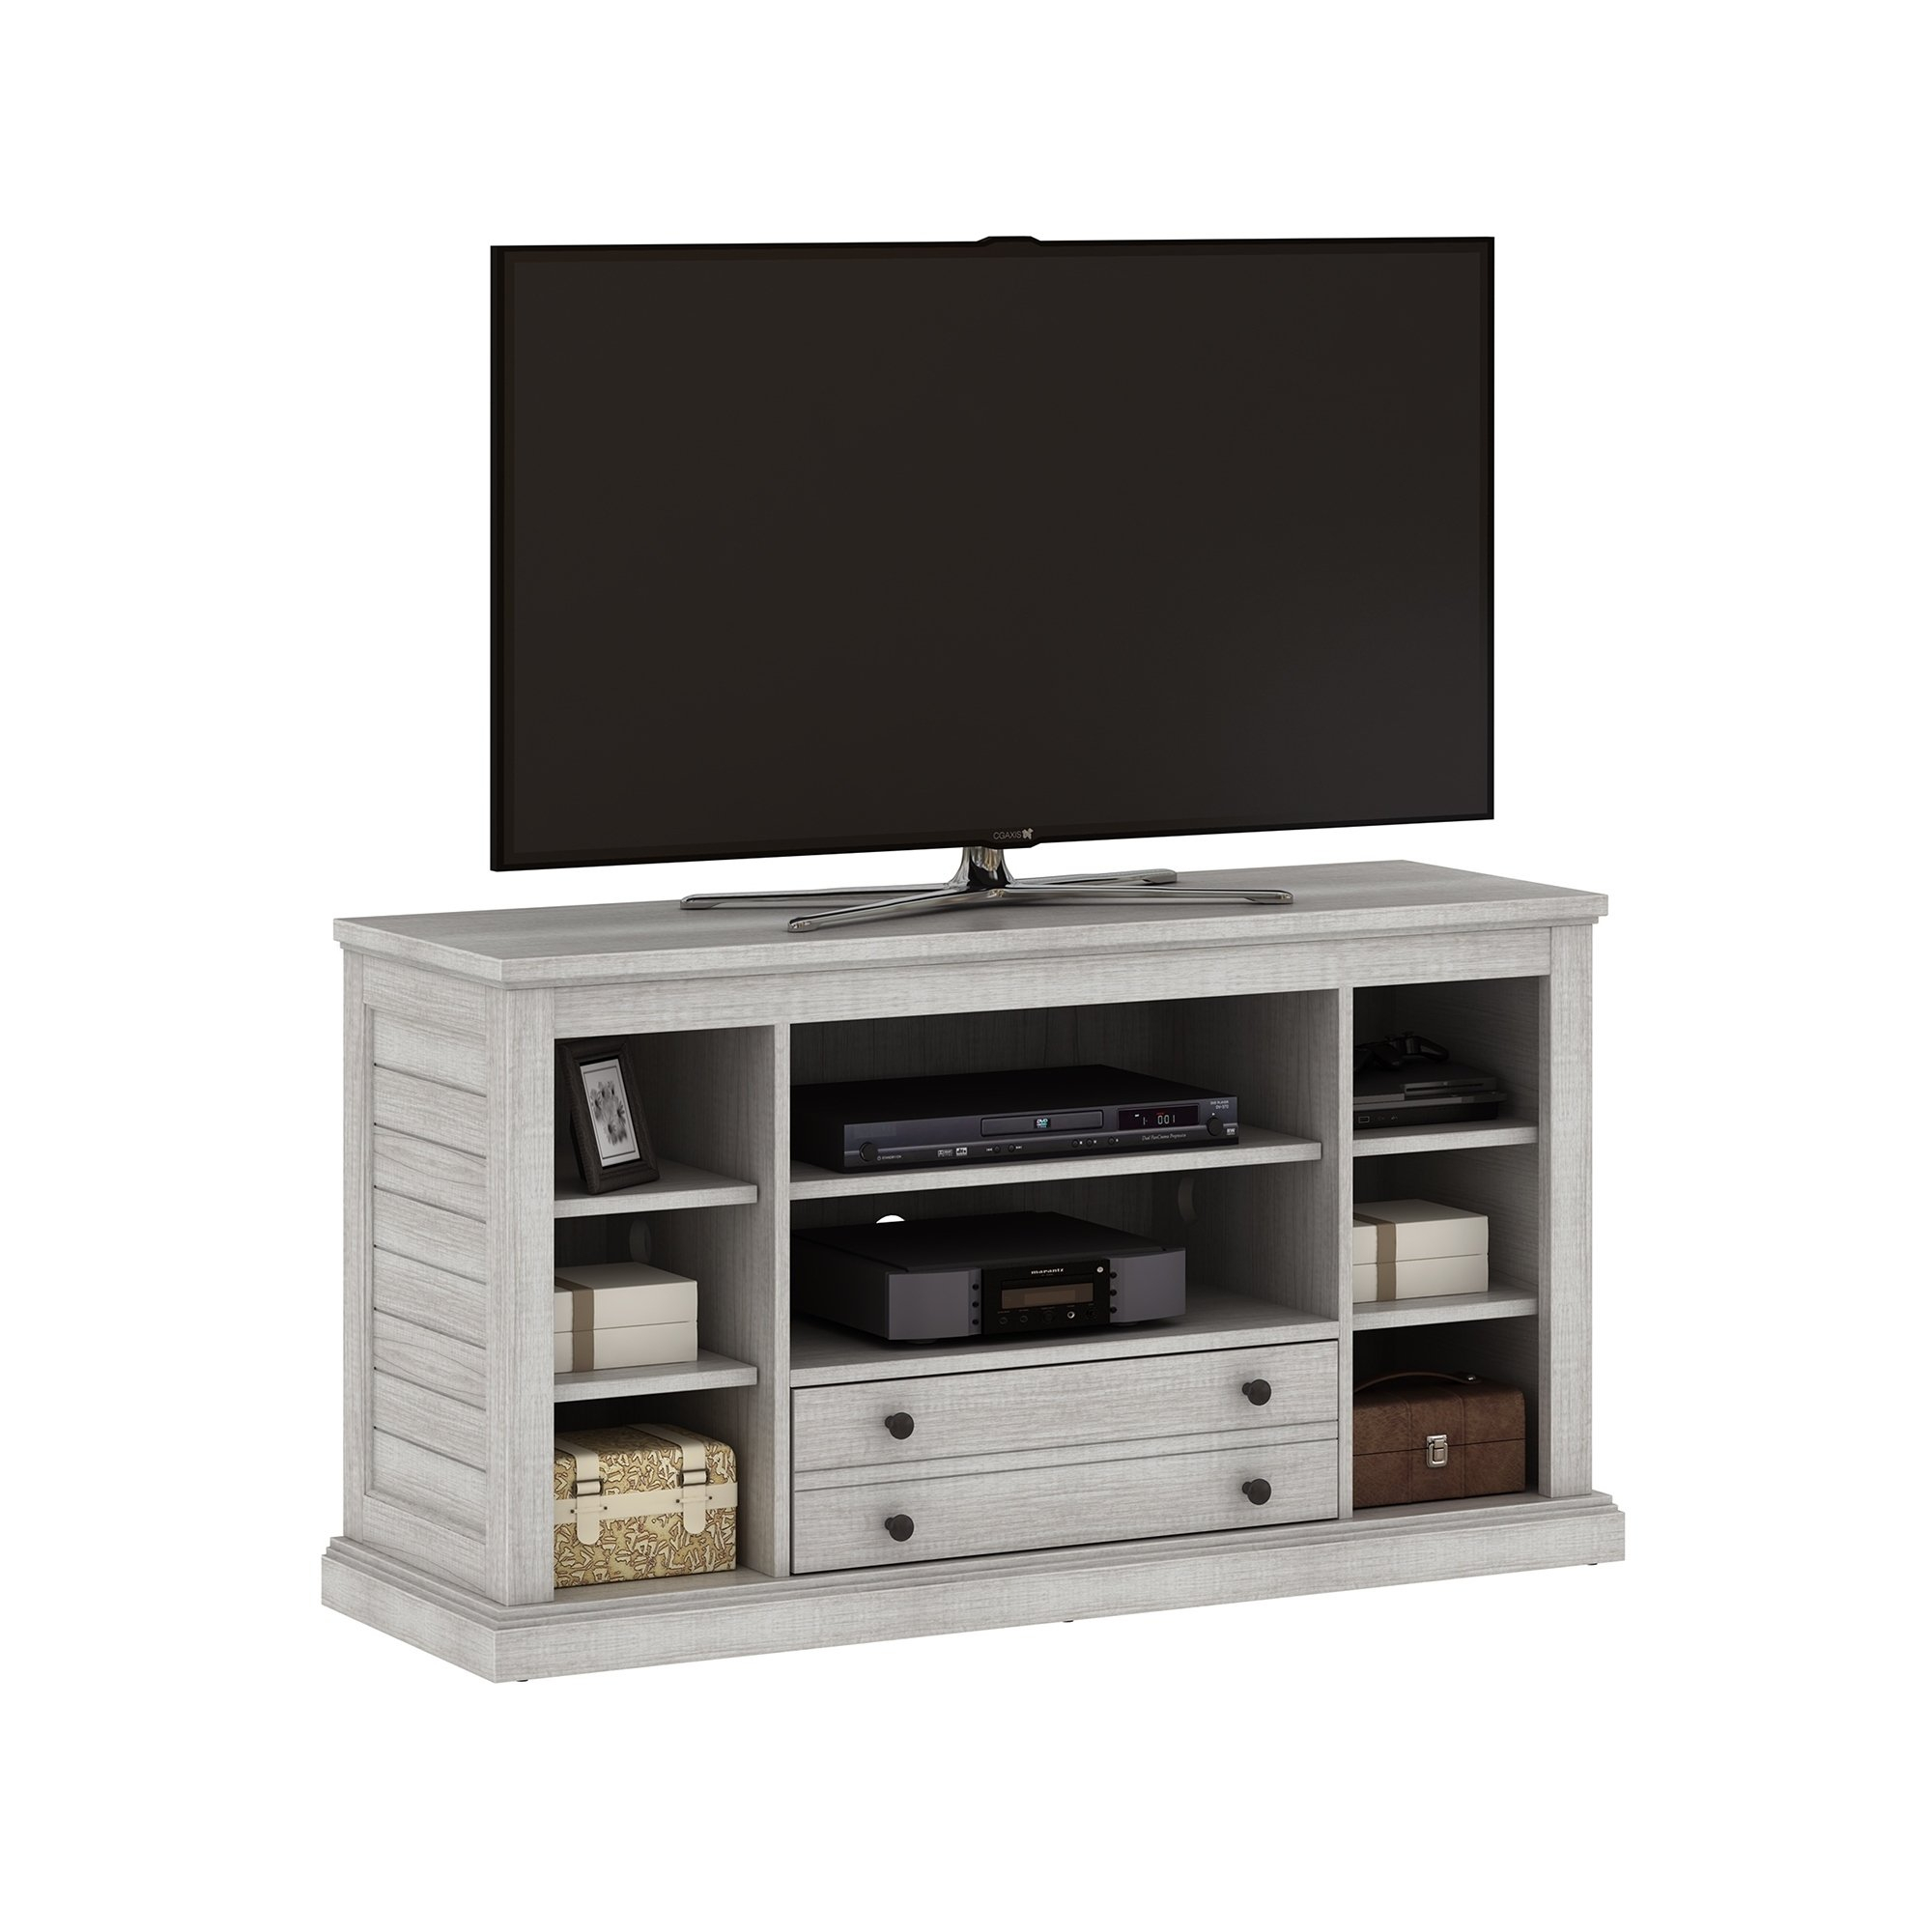 "Shop Abbott Commons Tv Stand For Tvs Up To 55"", Sargent Oak - Free intended for Abbot 60 Inch Tv Stands (Image 20 of 30)"